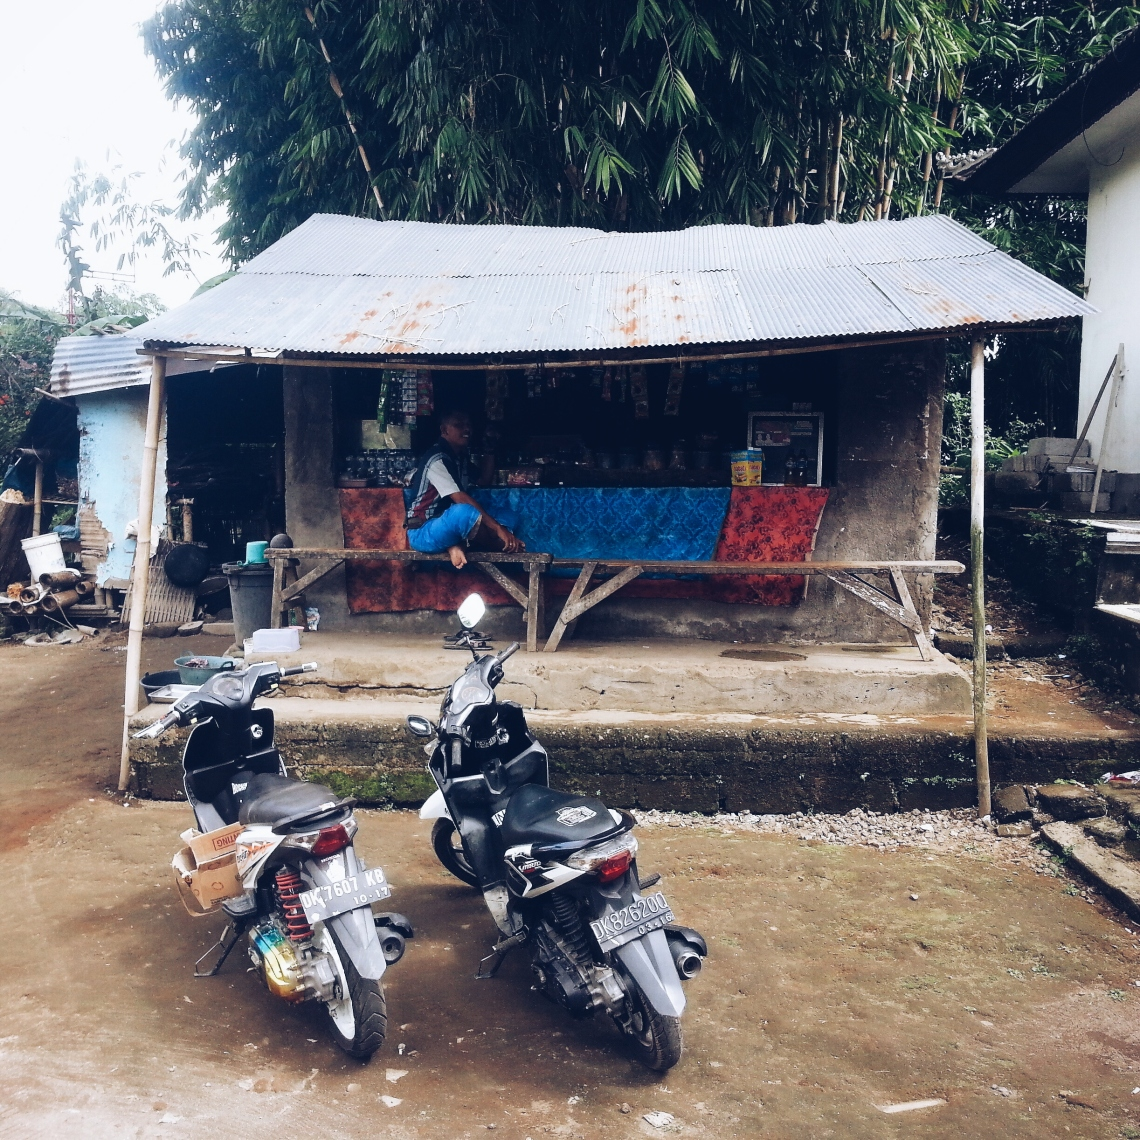 A tuckshop in the village